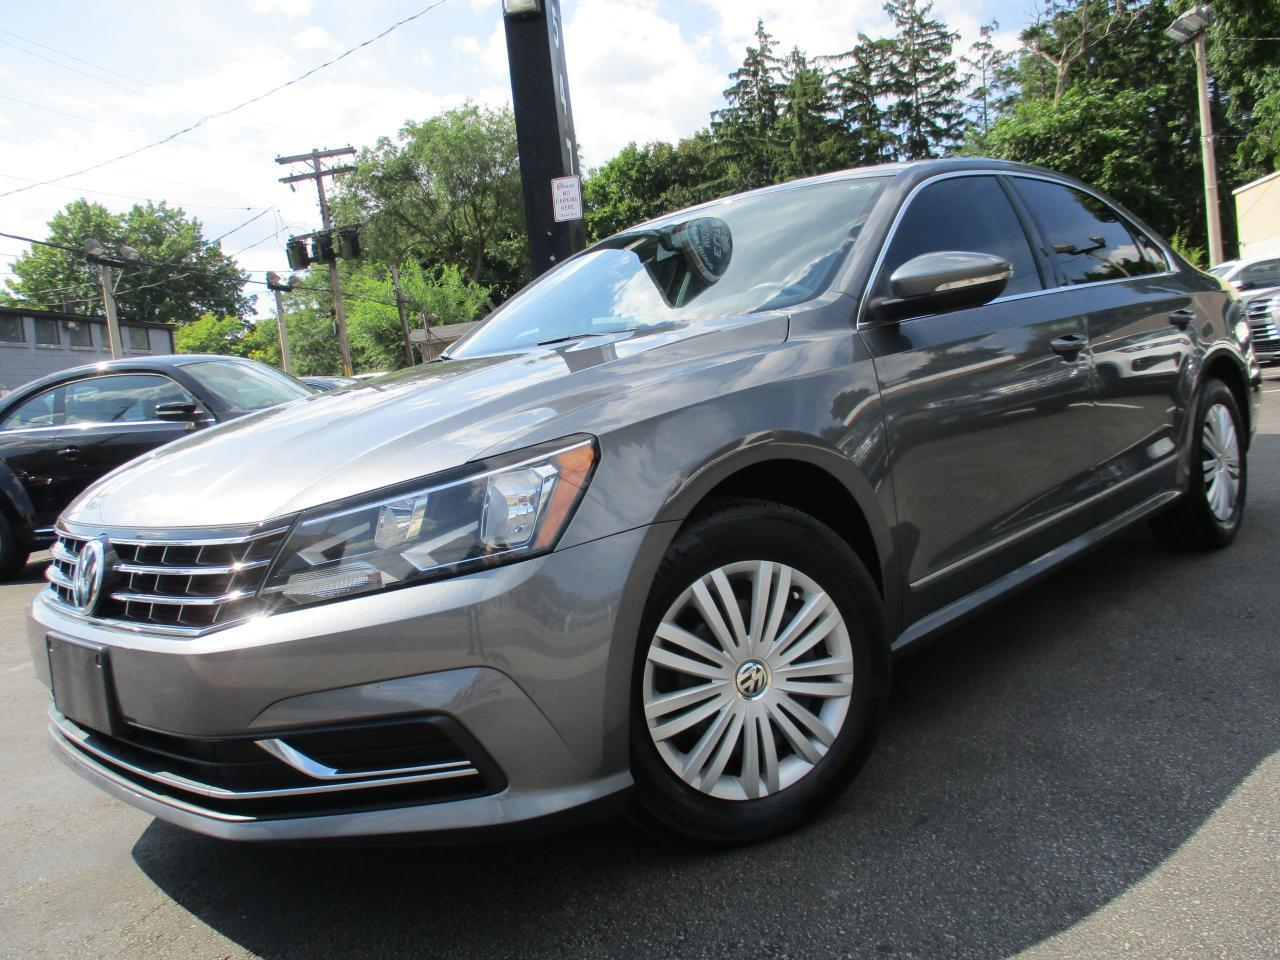 used 2016 volkswagen passat 1.8 tsi 5 speed one owner 98kms heated seat for sale in burlington, ontario carpages.ca